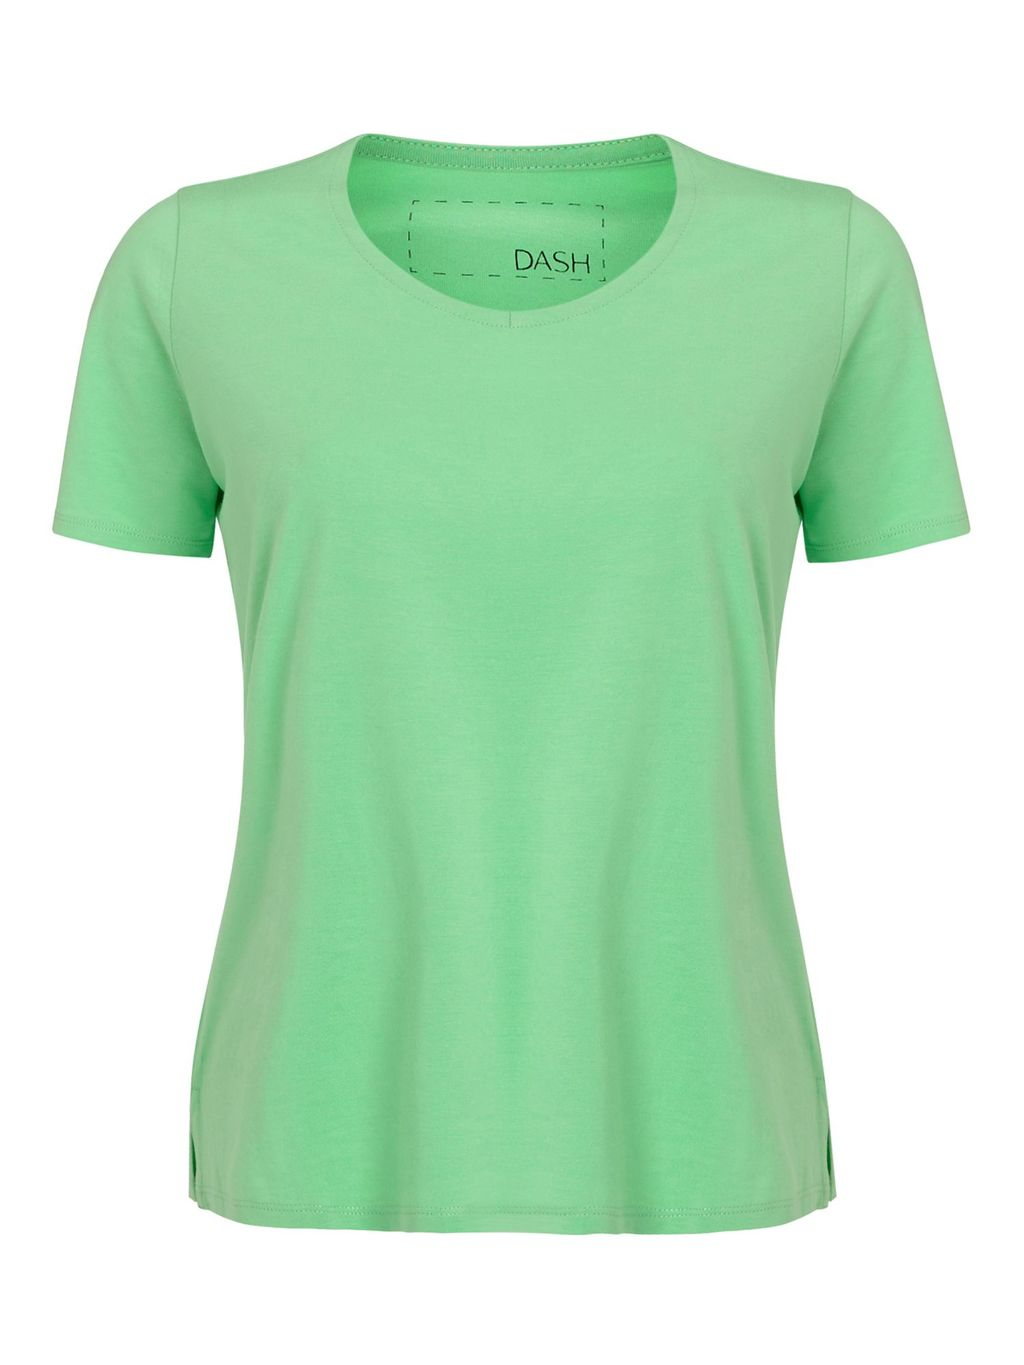 Apple Cotton Modal Top, Green - pattern: plain; style: t-shirt; predominant colour: lime; occasions: casual; length: standard; fibres: cotton - 100%; fit: body skimming; neckline: crew; sleeve length: short sleeve; sleeve style: standard; pattern type: fabric; texture group: jersey - stretchy/drapey; season: s/s 2016; wardrobe: highlight